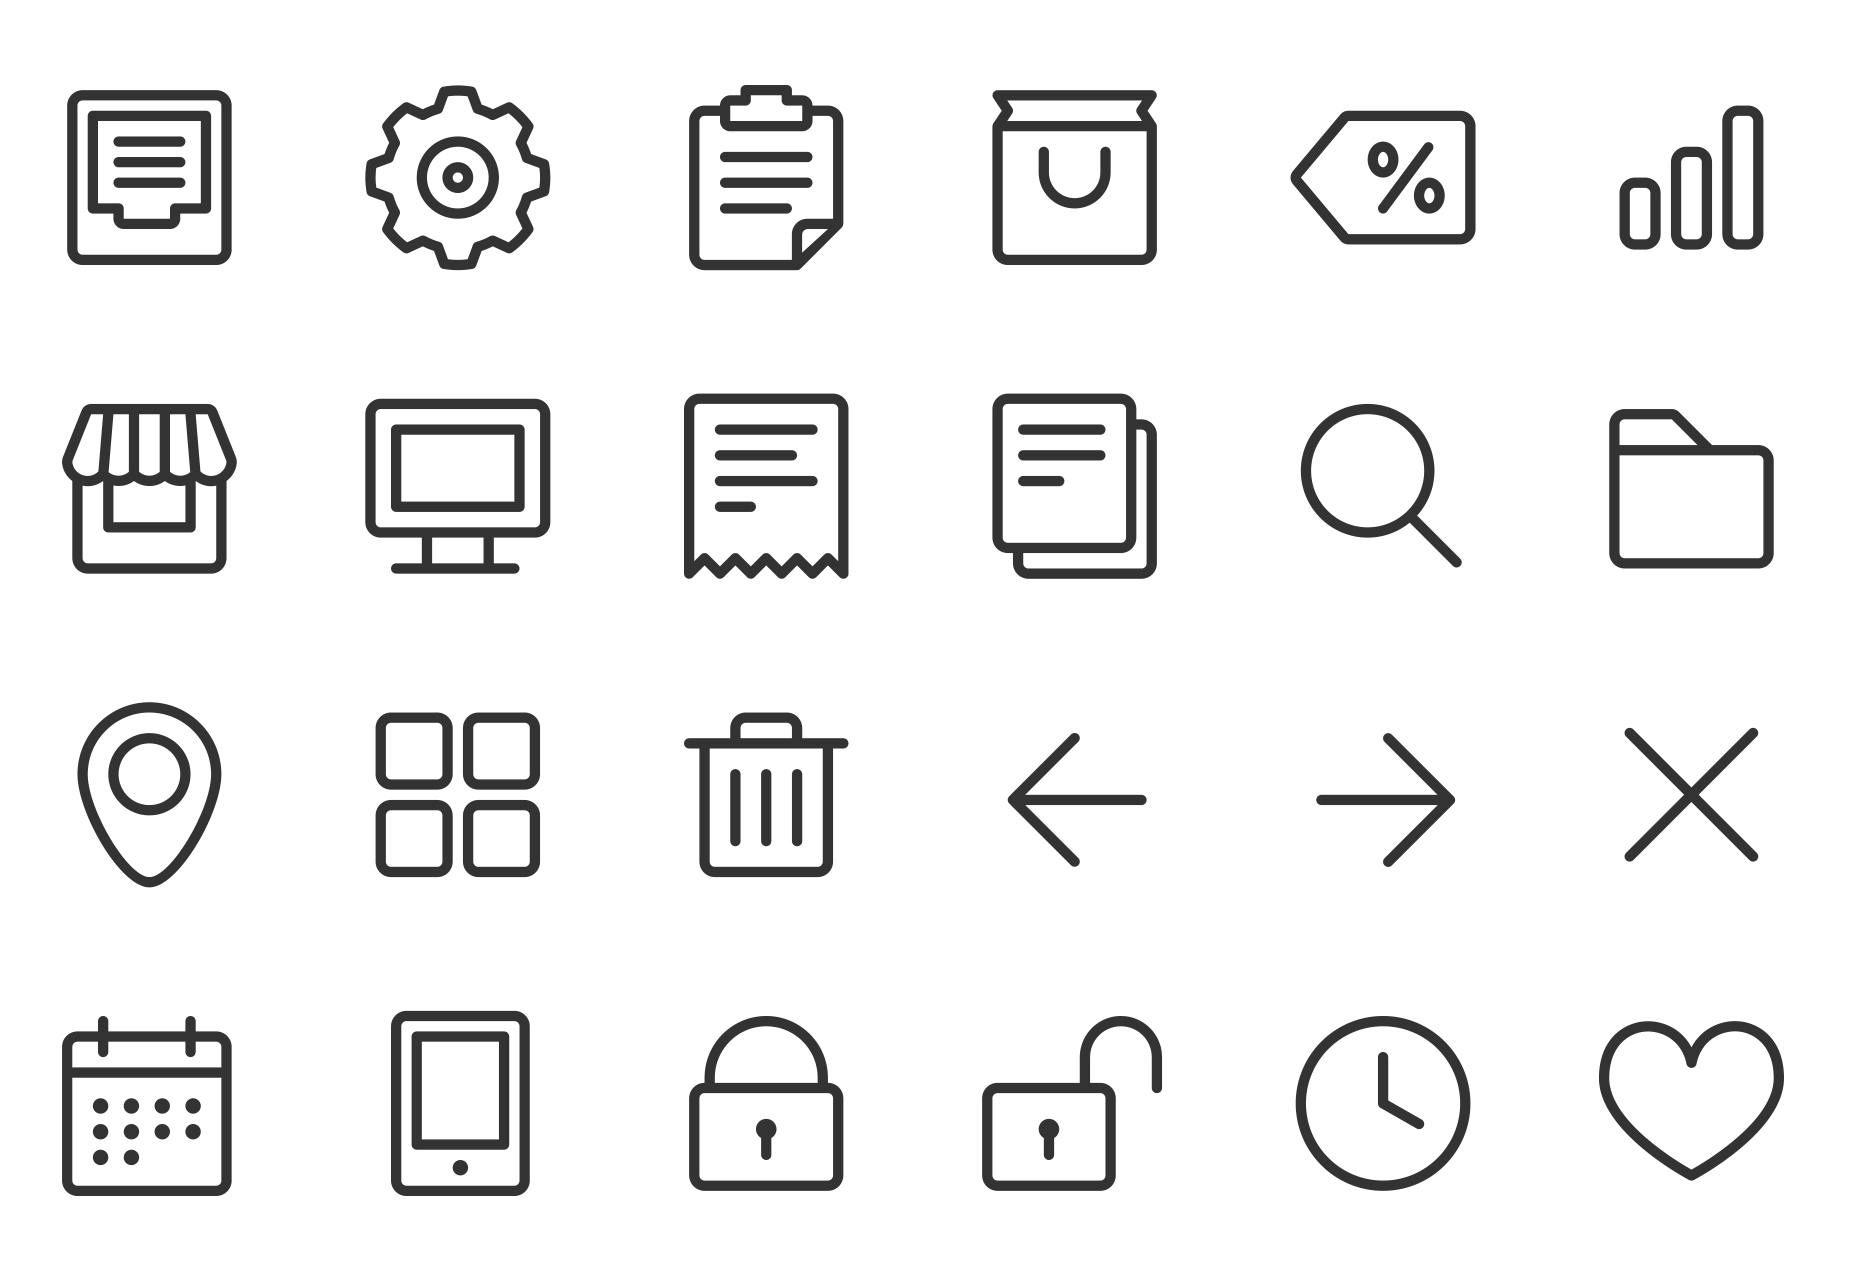 Photoshop Icon Templates